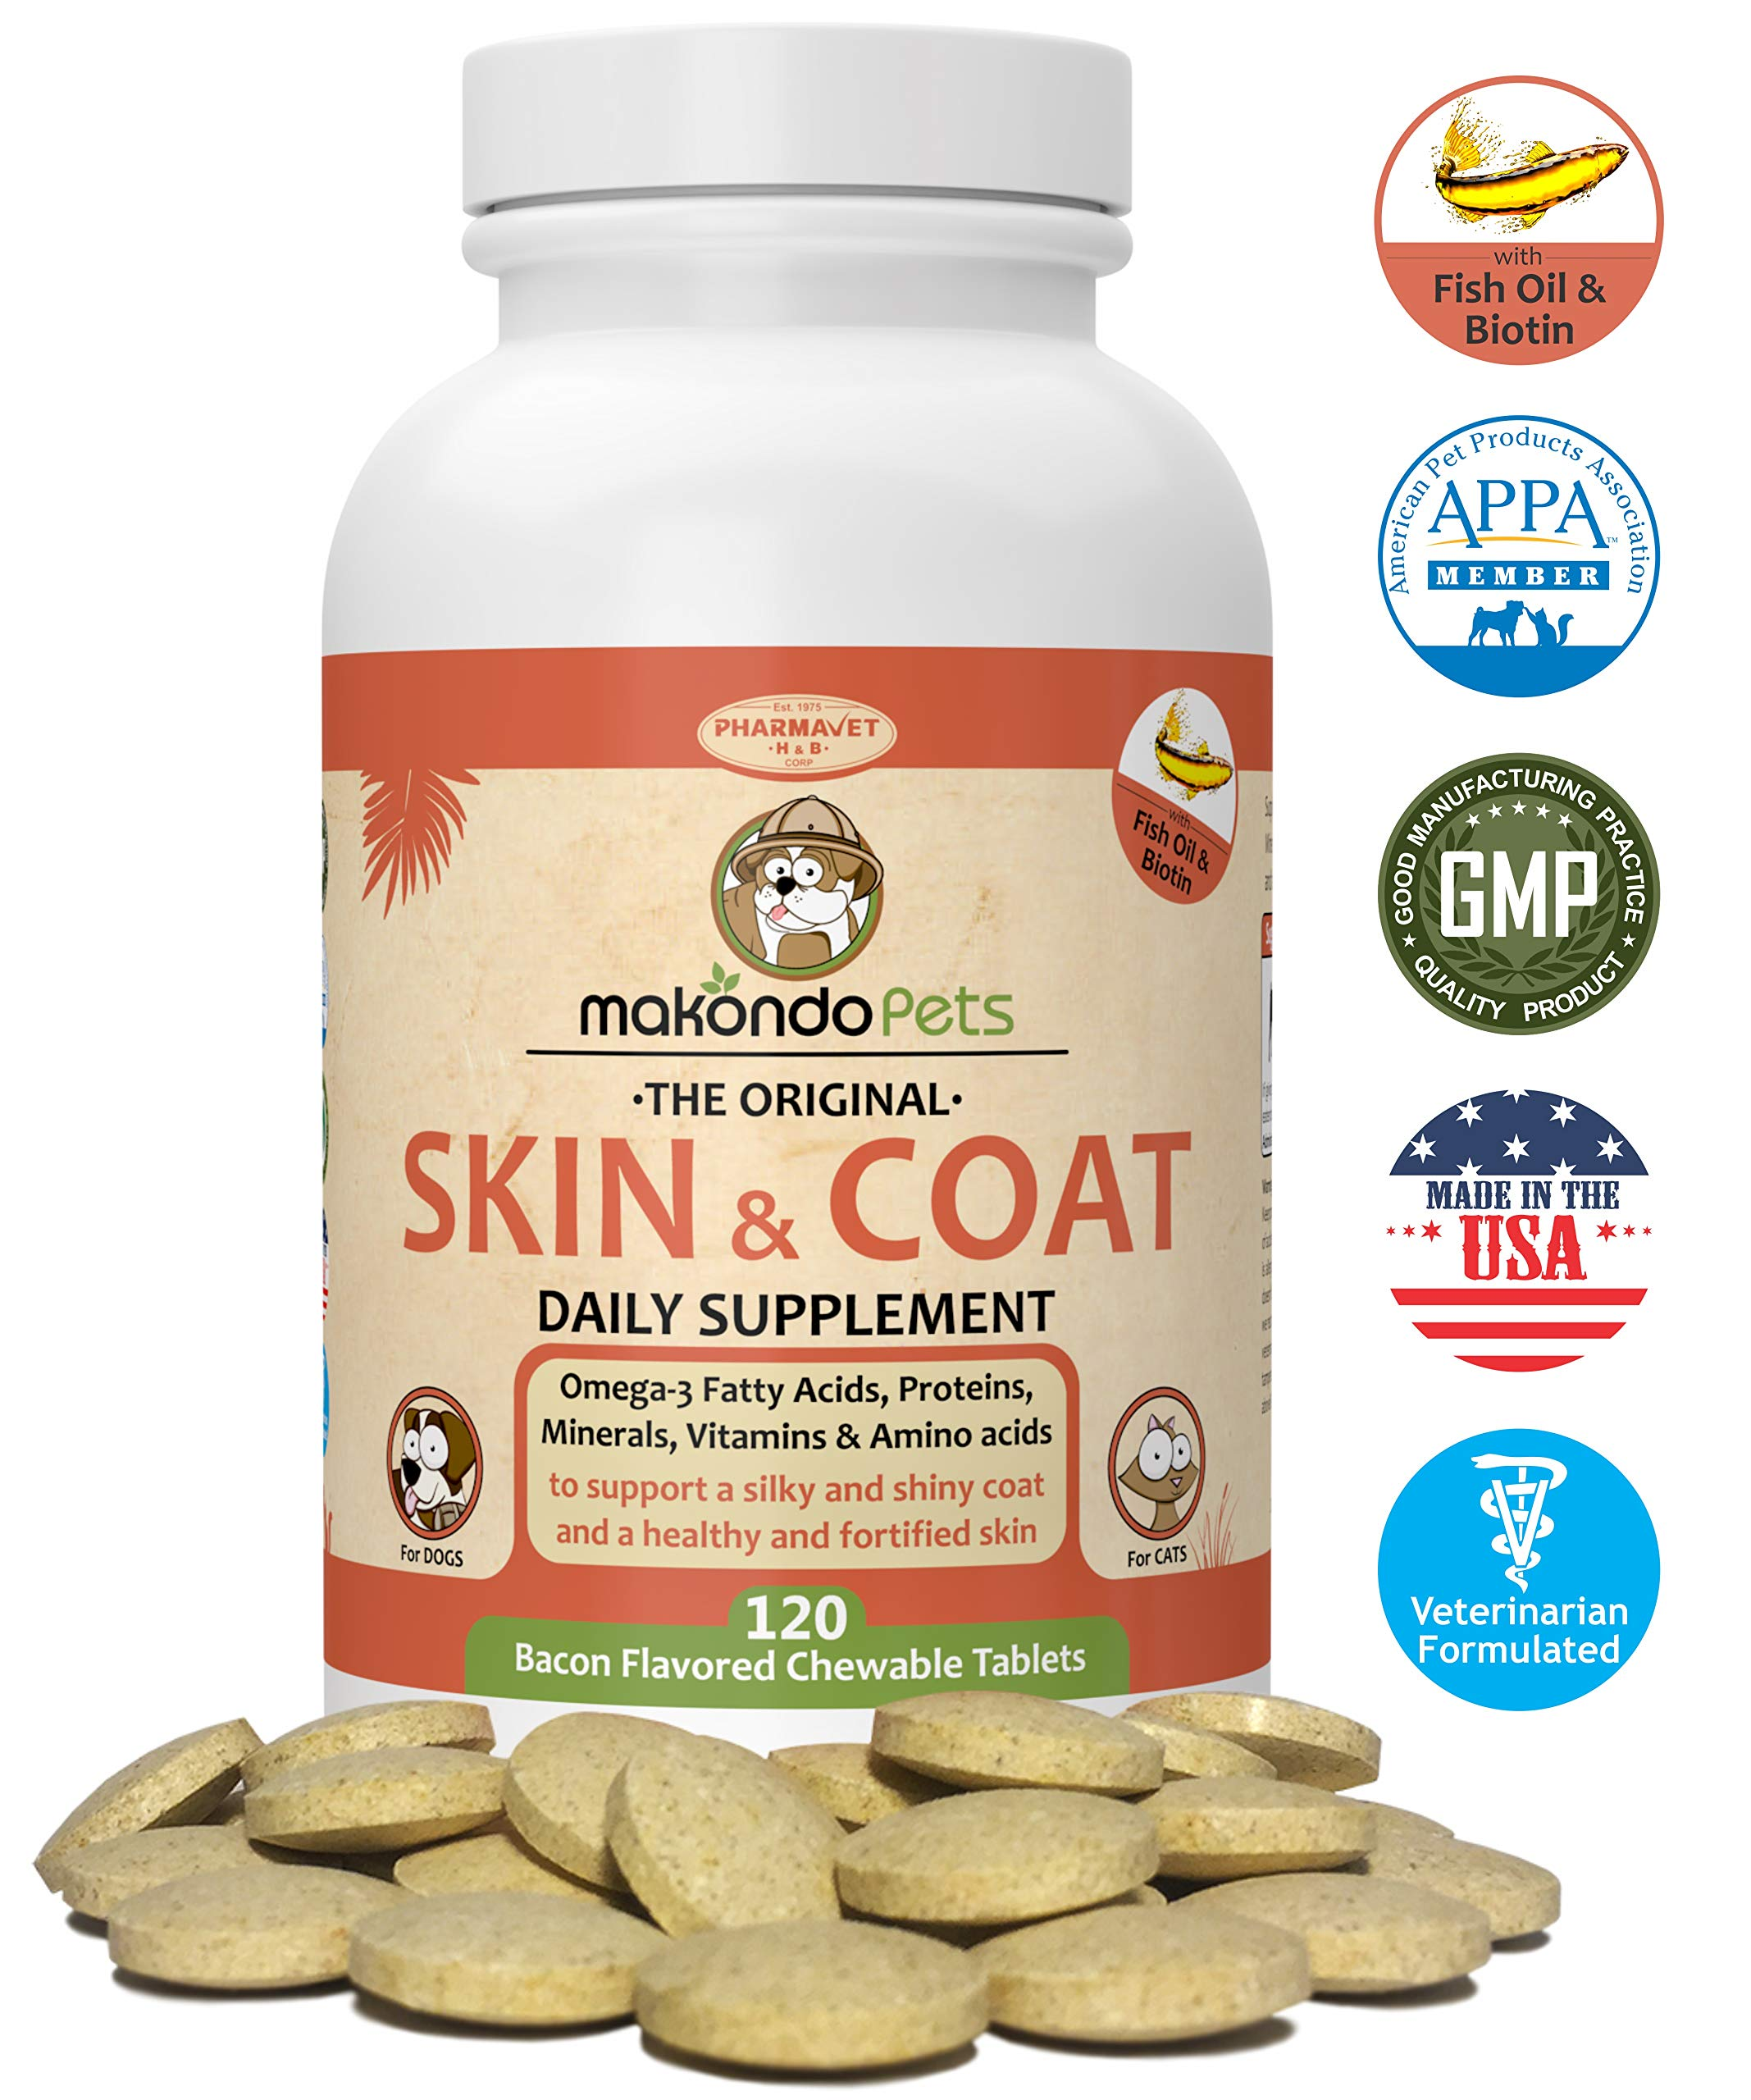 Skin and Coat Supplement for Dogs and Cats - Fish Oil for Dogs Fatty Acids, Vitamins, Amino Acids, Minerals & Omega 3 for dogs -Relieve Dog Dry Skin Itchy Dog Hot Spots & Shedding (120 Tablets) by Makondo Pets